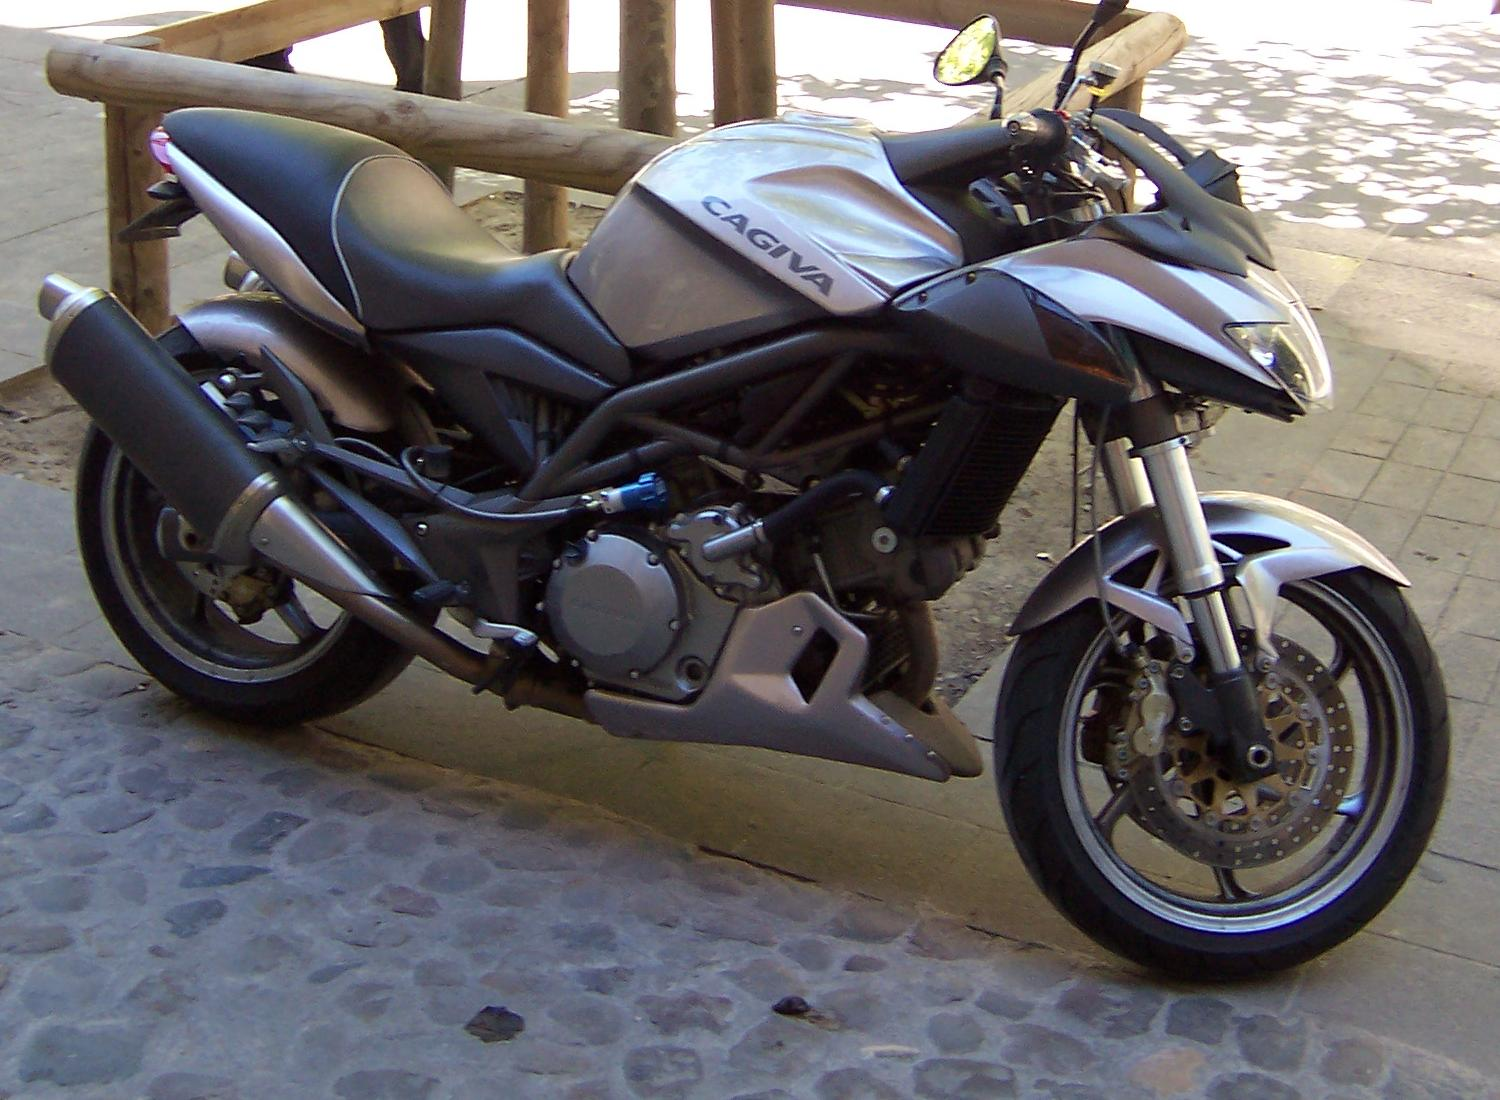 Cagiva Planet 125 2002 images #67795